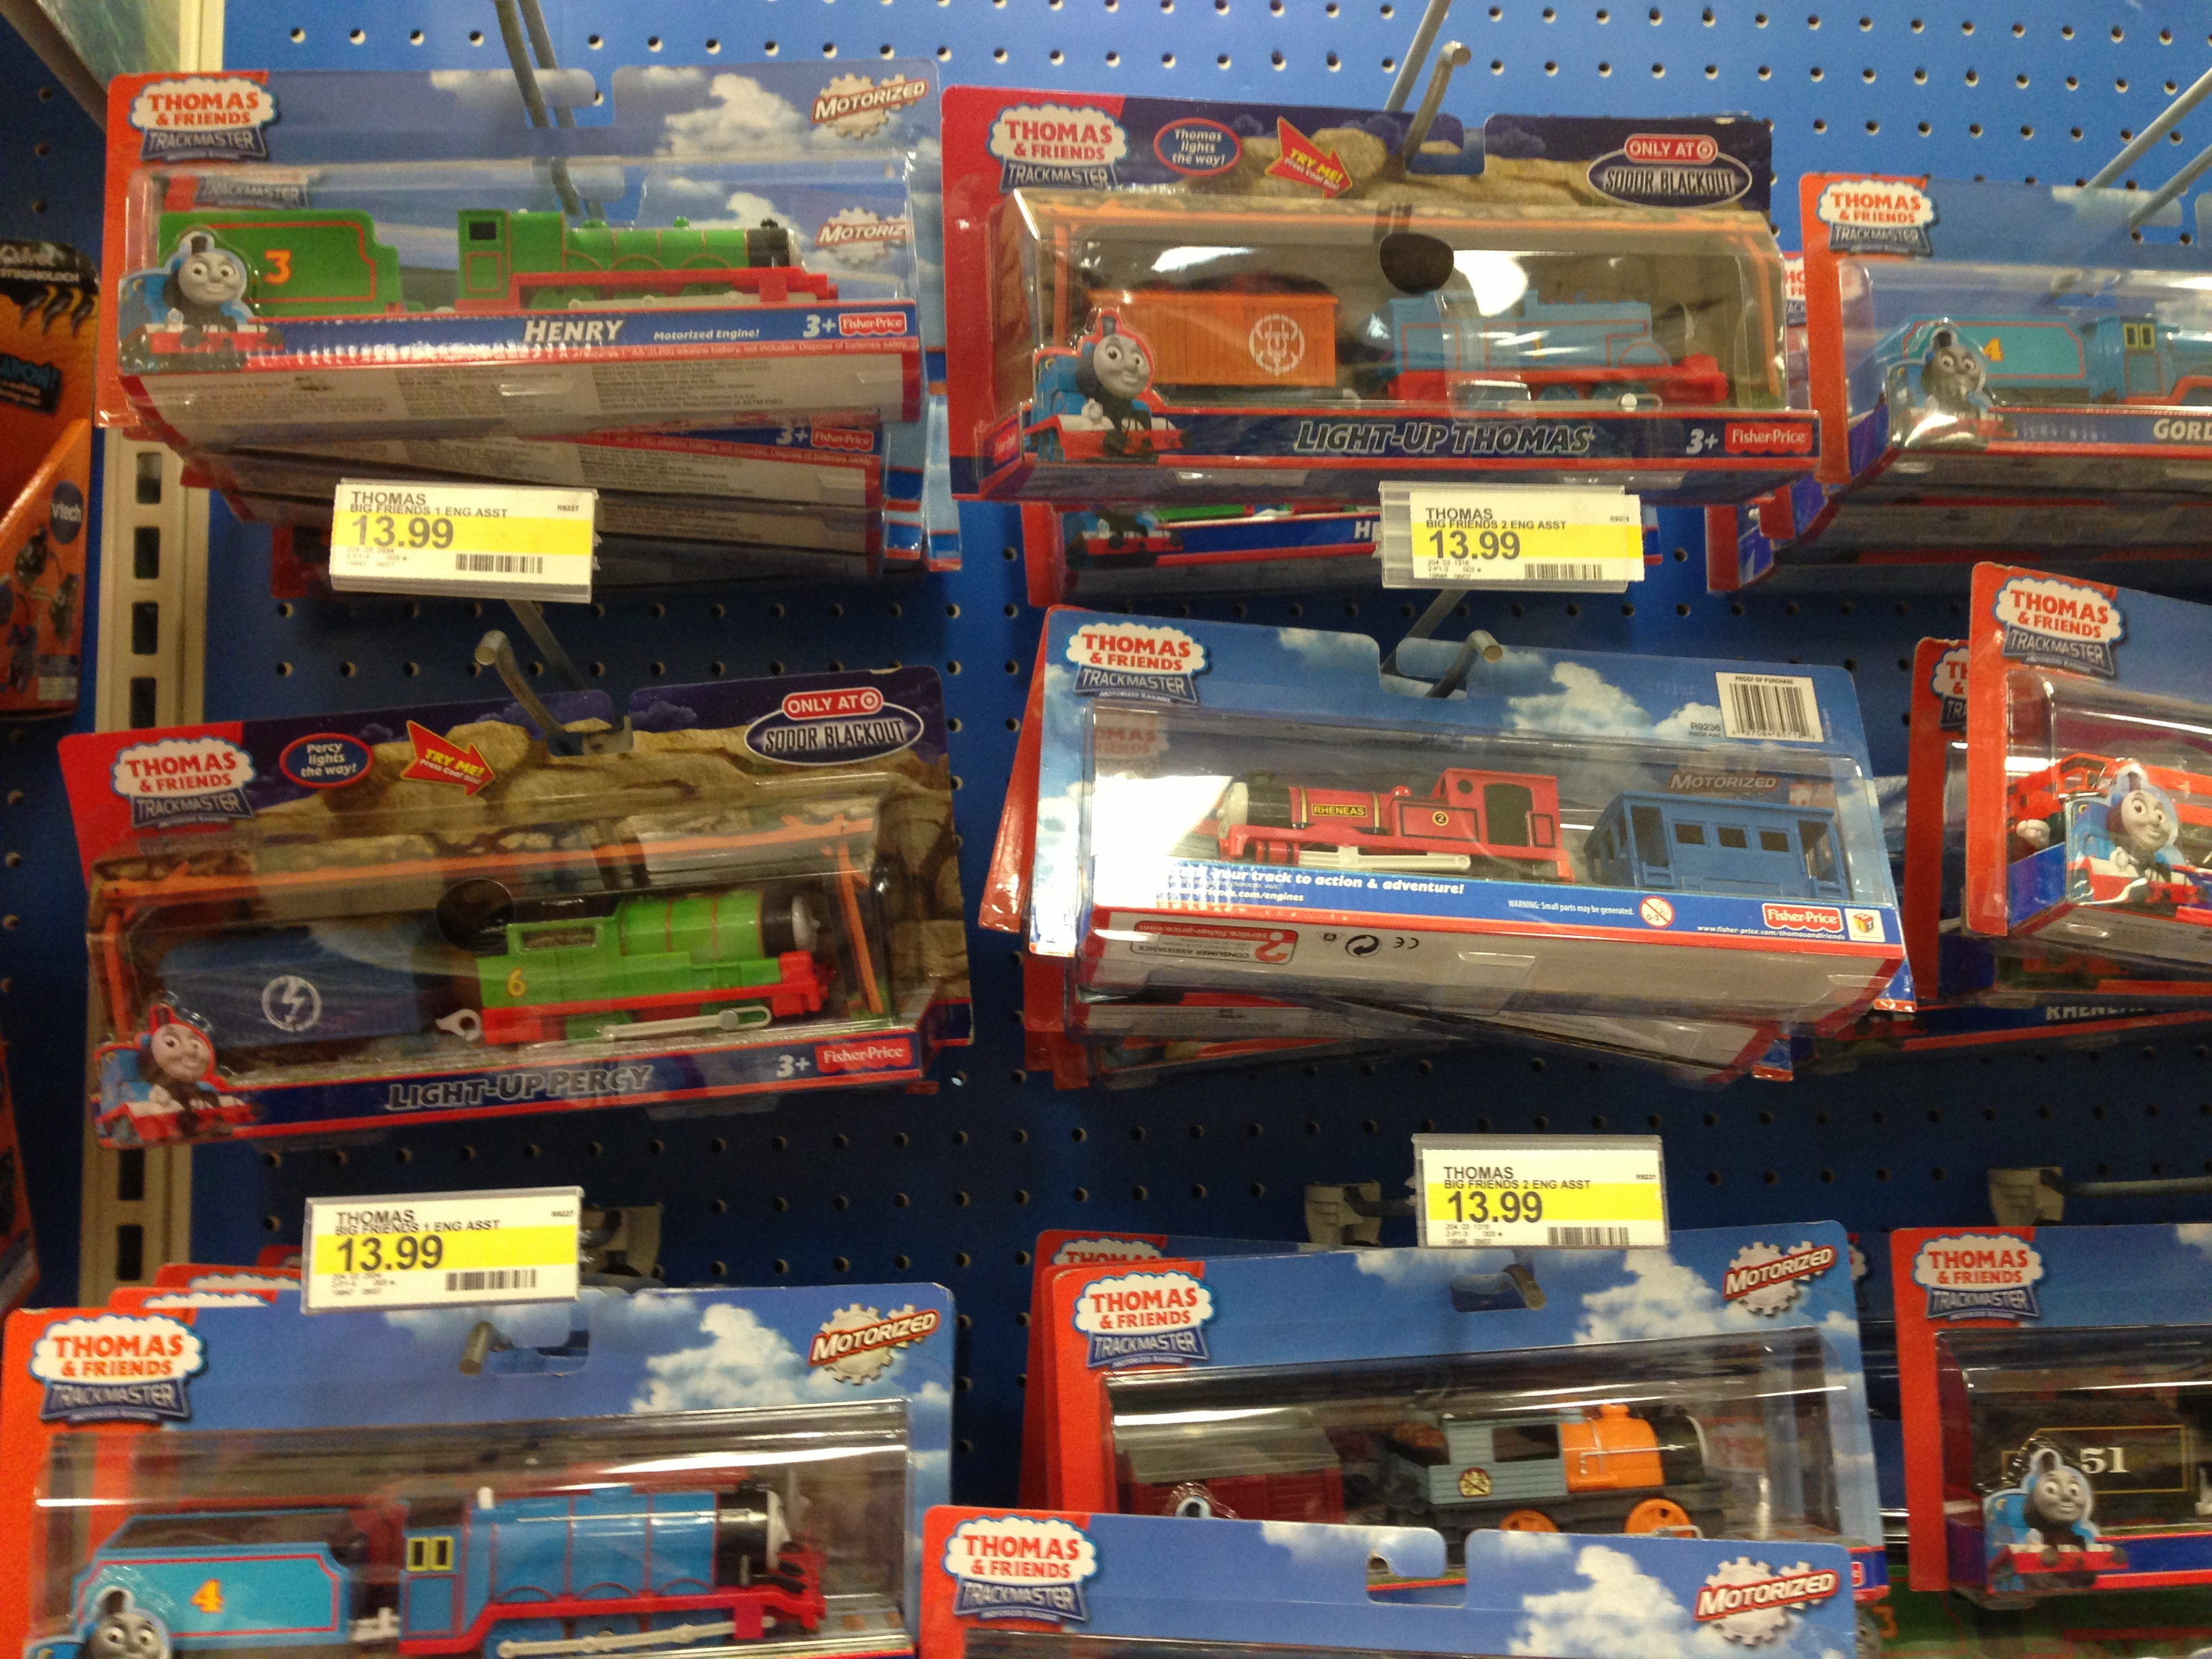 Target Toy Trains : Target surprise toy clearance thomas the train for